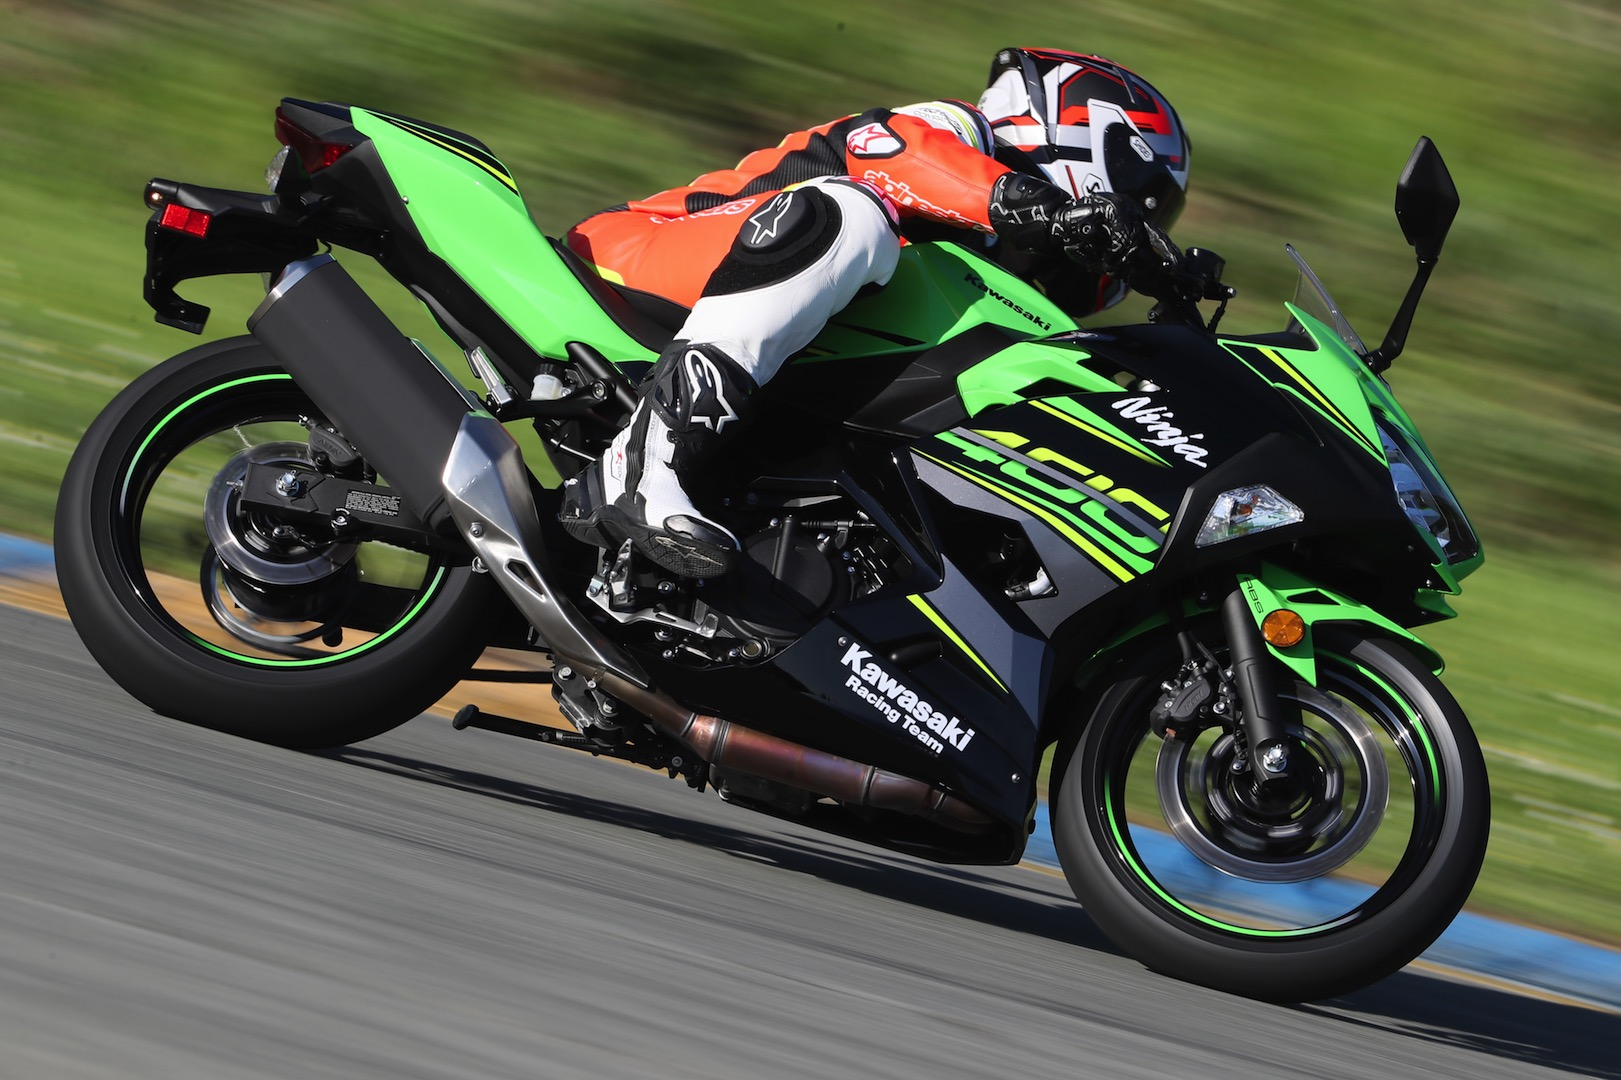 2018 Kawasaki Ninja 400 review